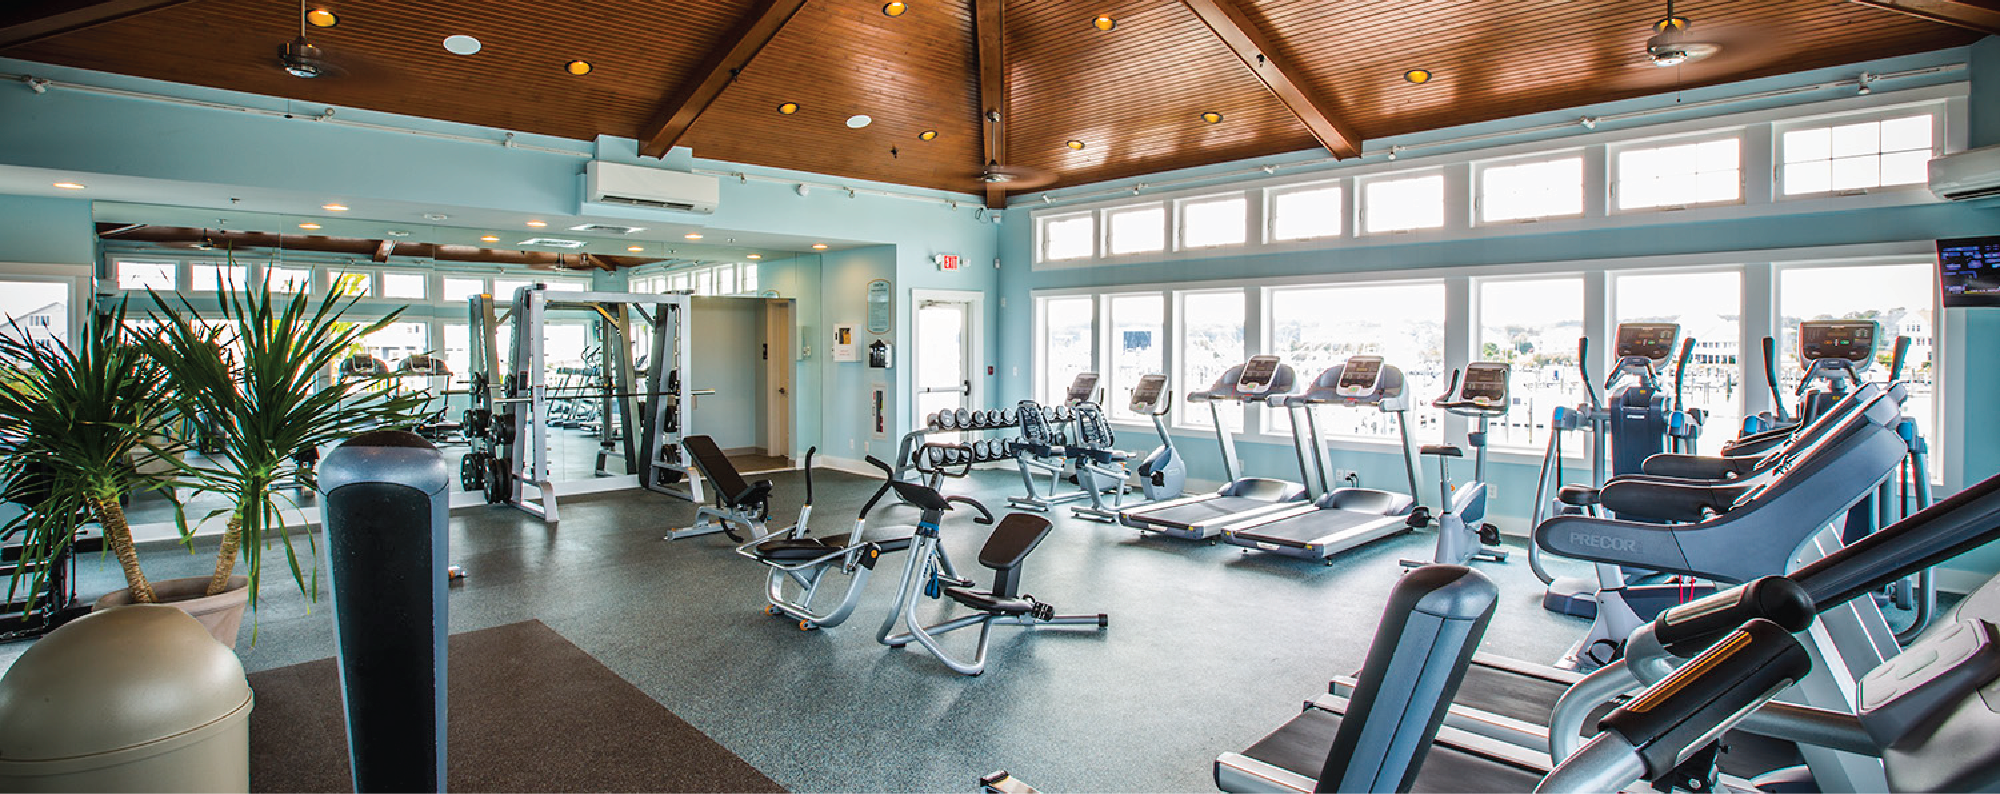 Teal Fitness/Gym Room